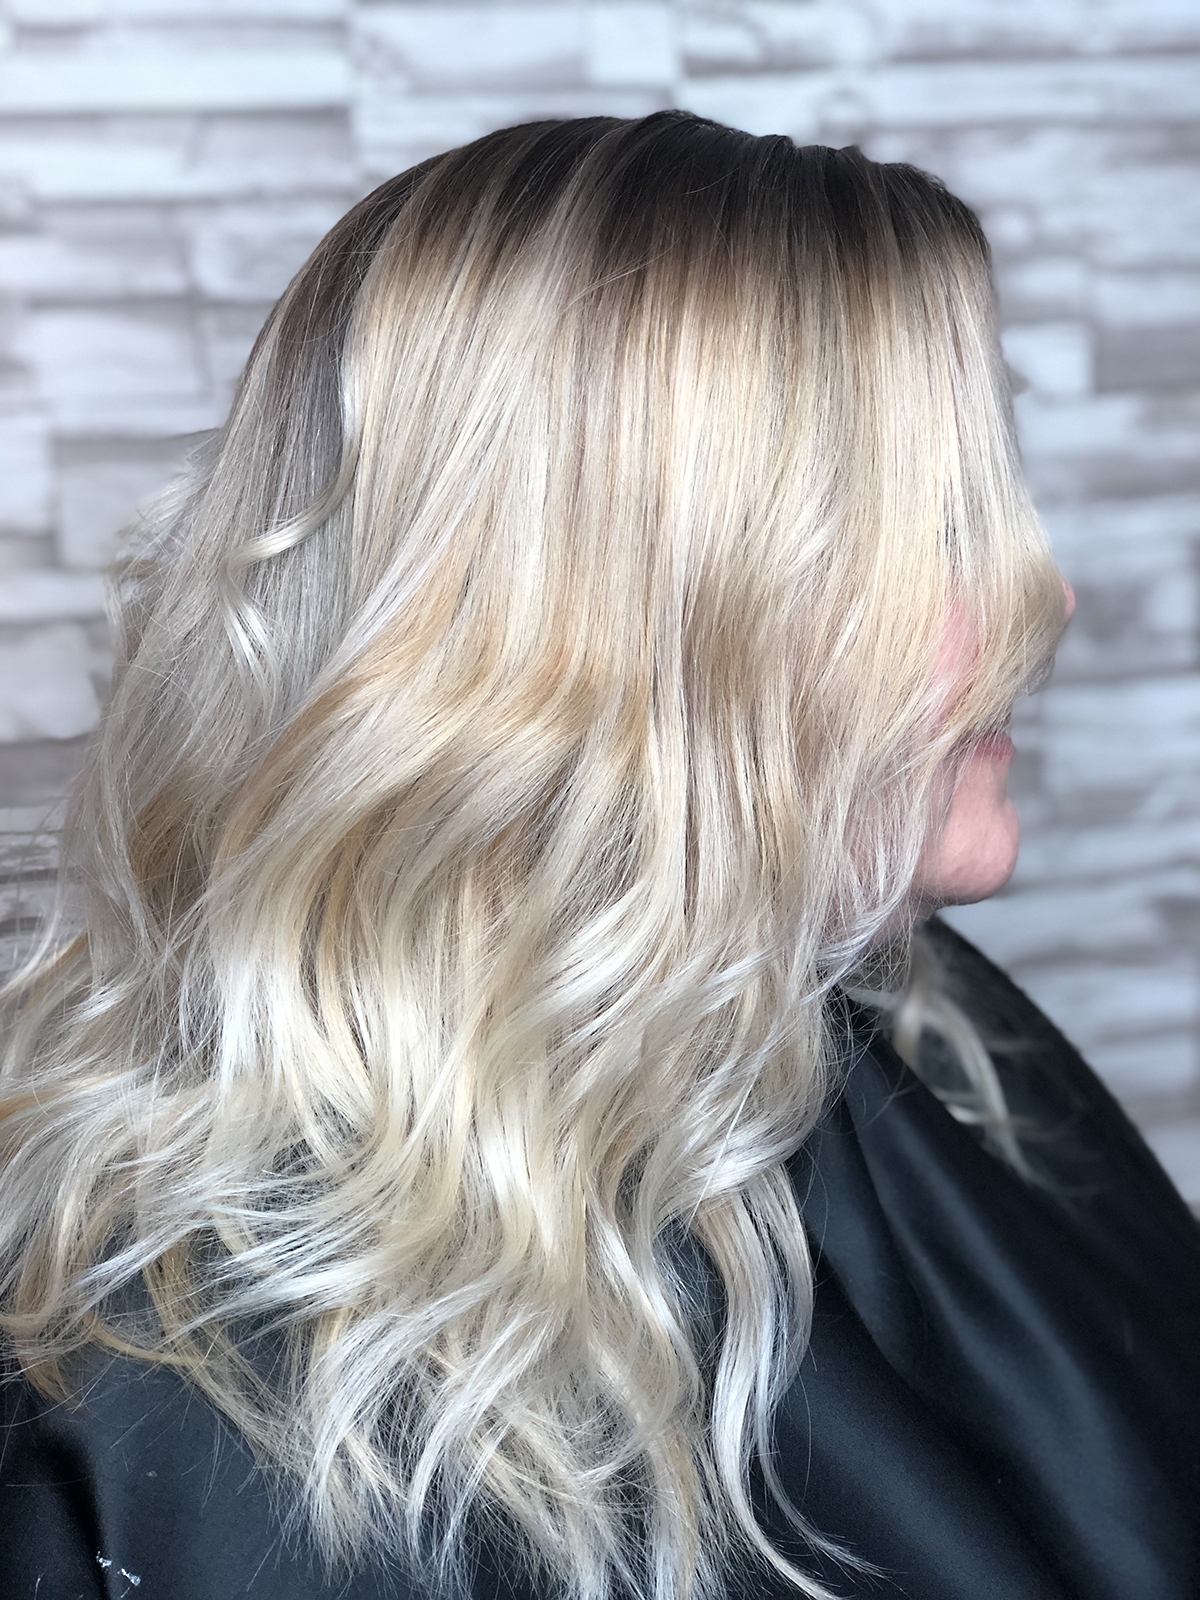 Ombre, Blond Highlights and Balayage